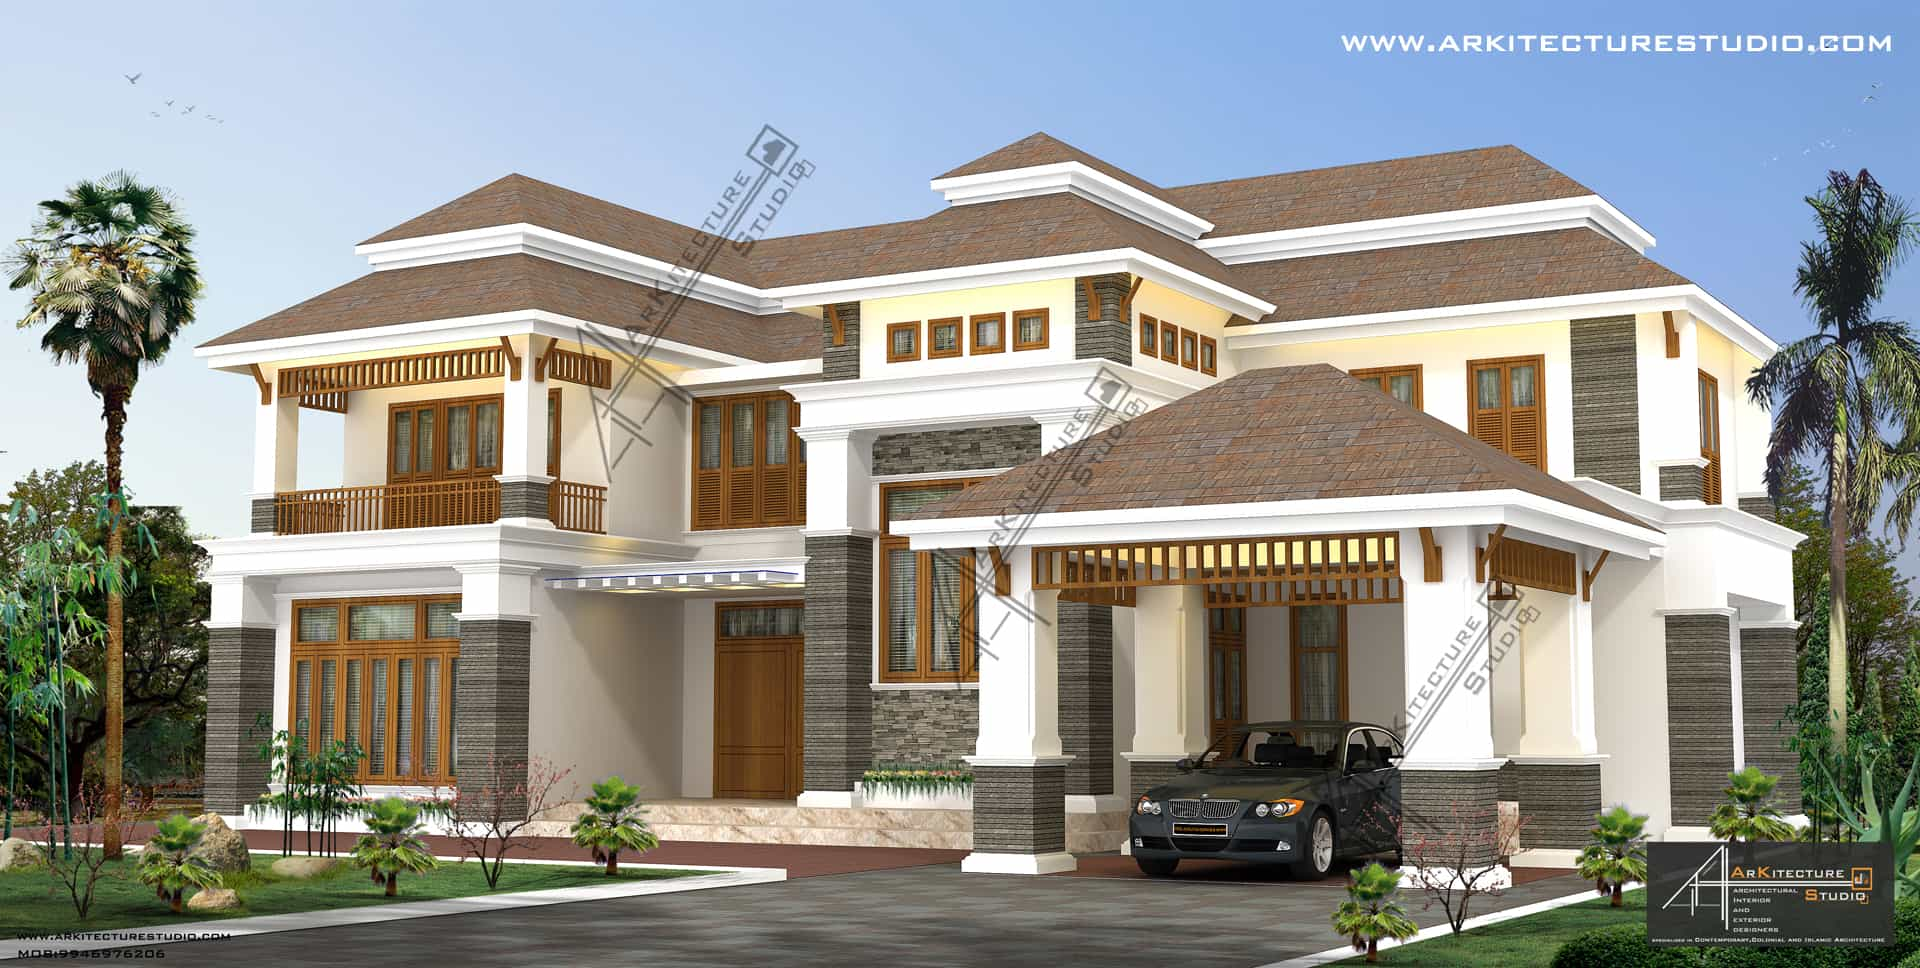 Colonial Style House Designs In Kerala At 3500 Sqft 5000: Colonial House  Design